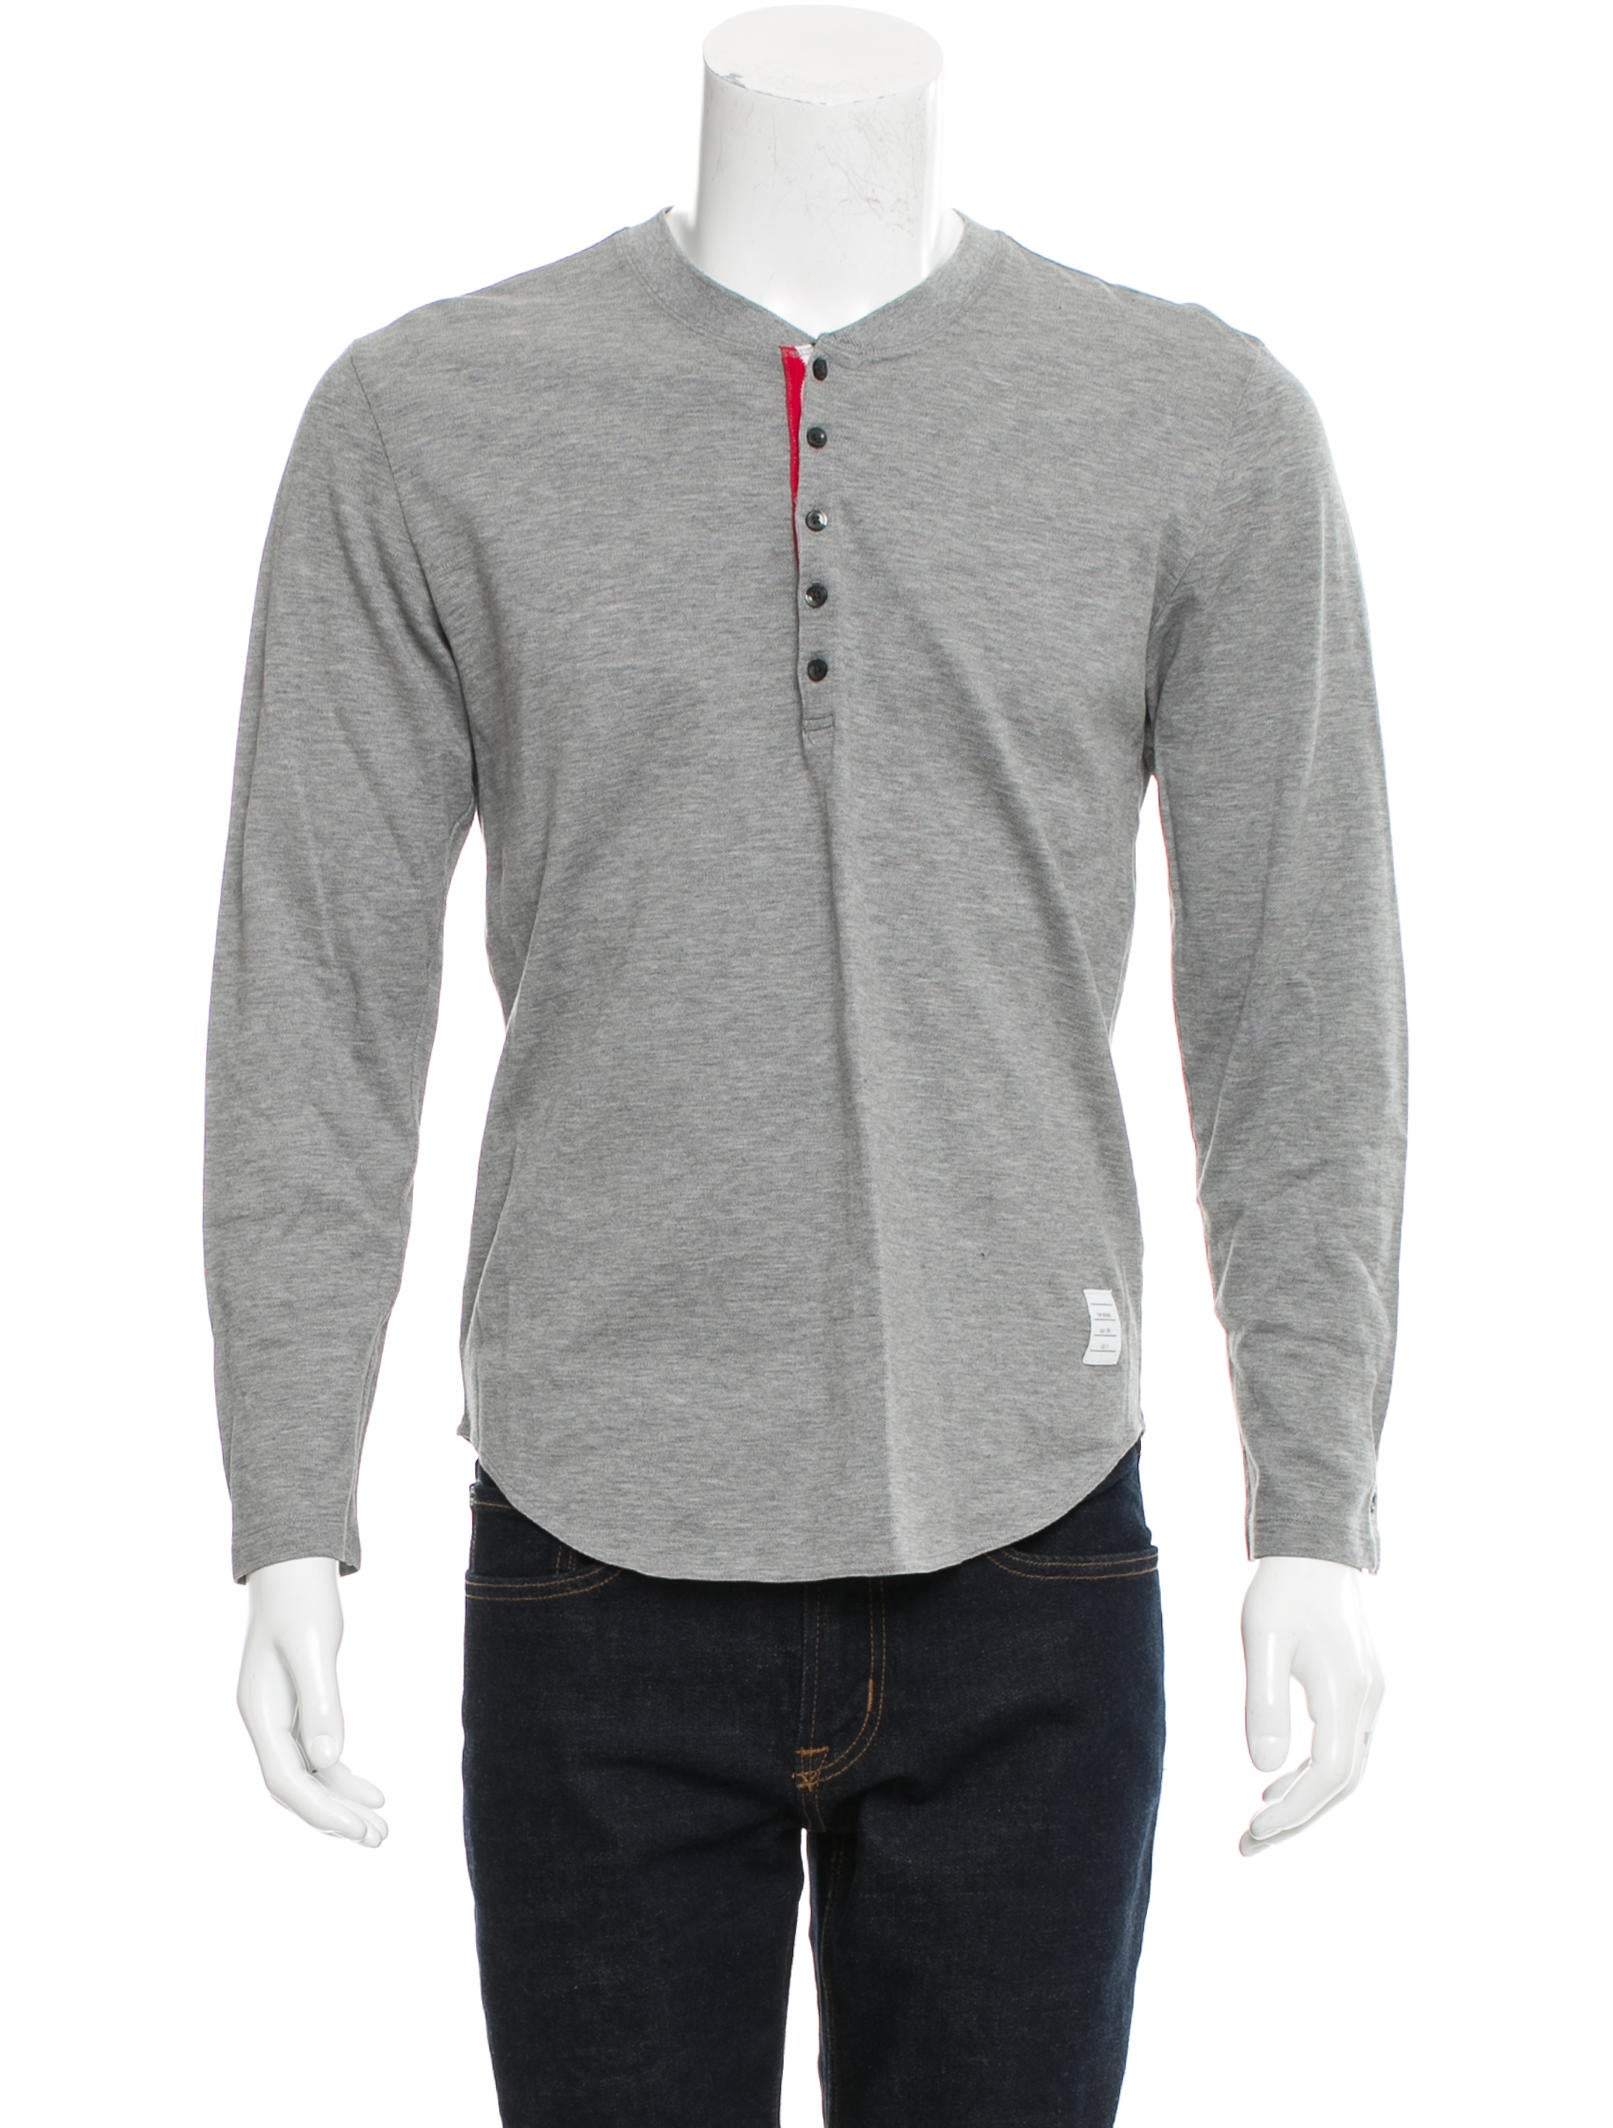 Thom browne long sleeve henley t shirt clothing for Thom browne t shirt